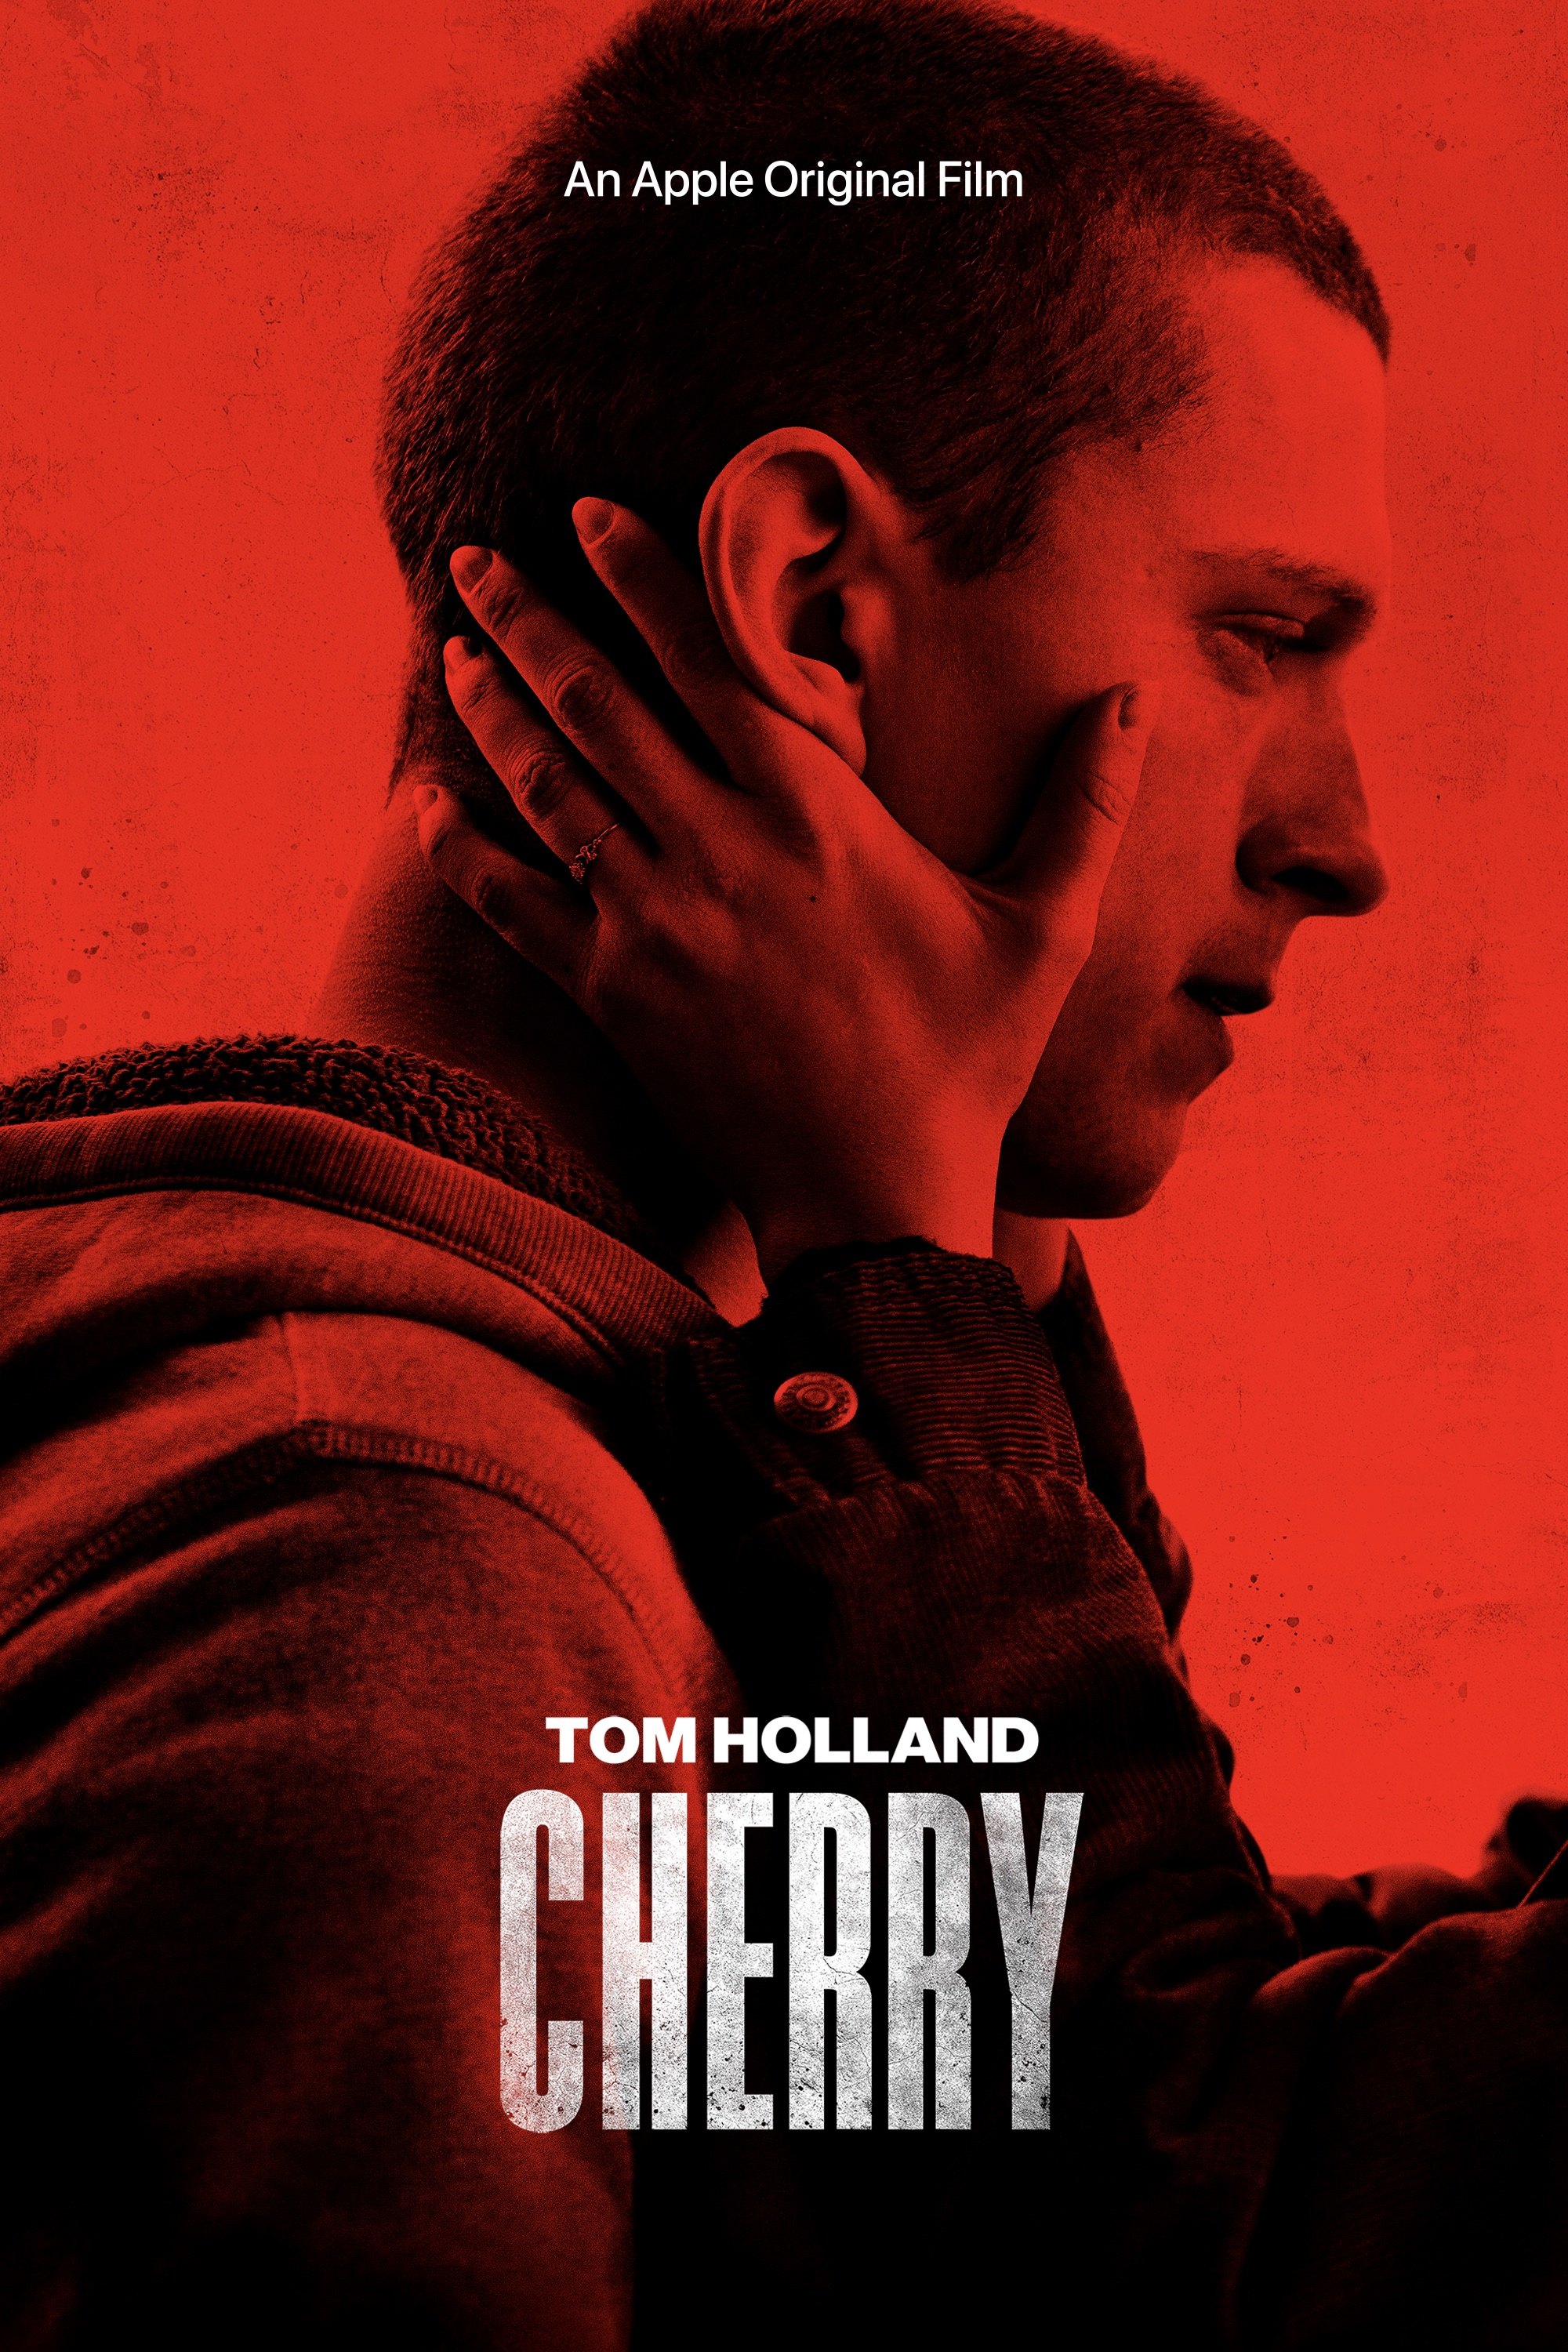 Cherry 2021 Hindi Dubbed (Unofficial) 480p HDRip 450MB Download